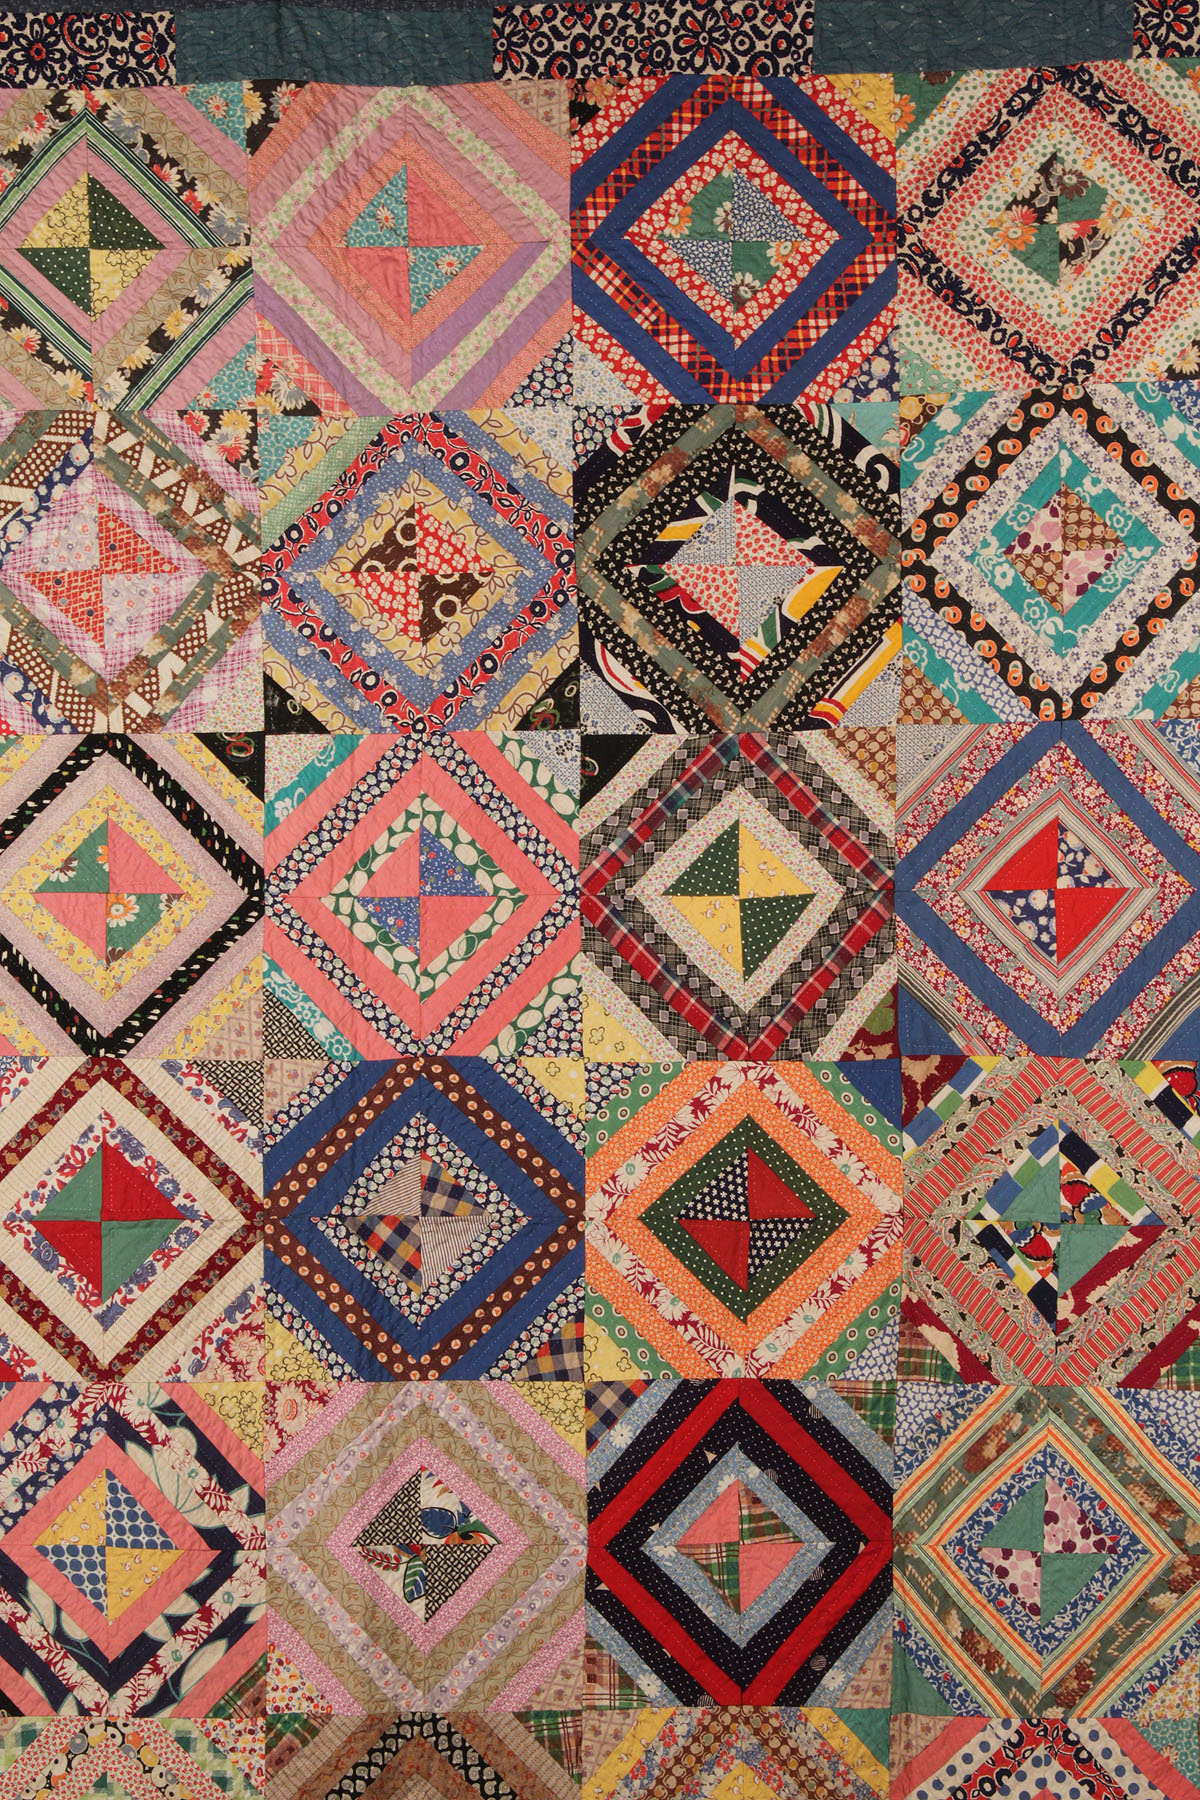 Lot 187 East Tn Quilt African American History